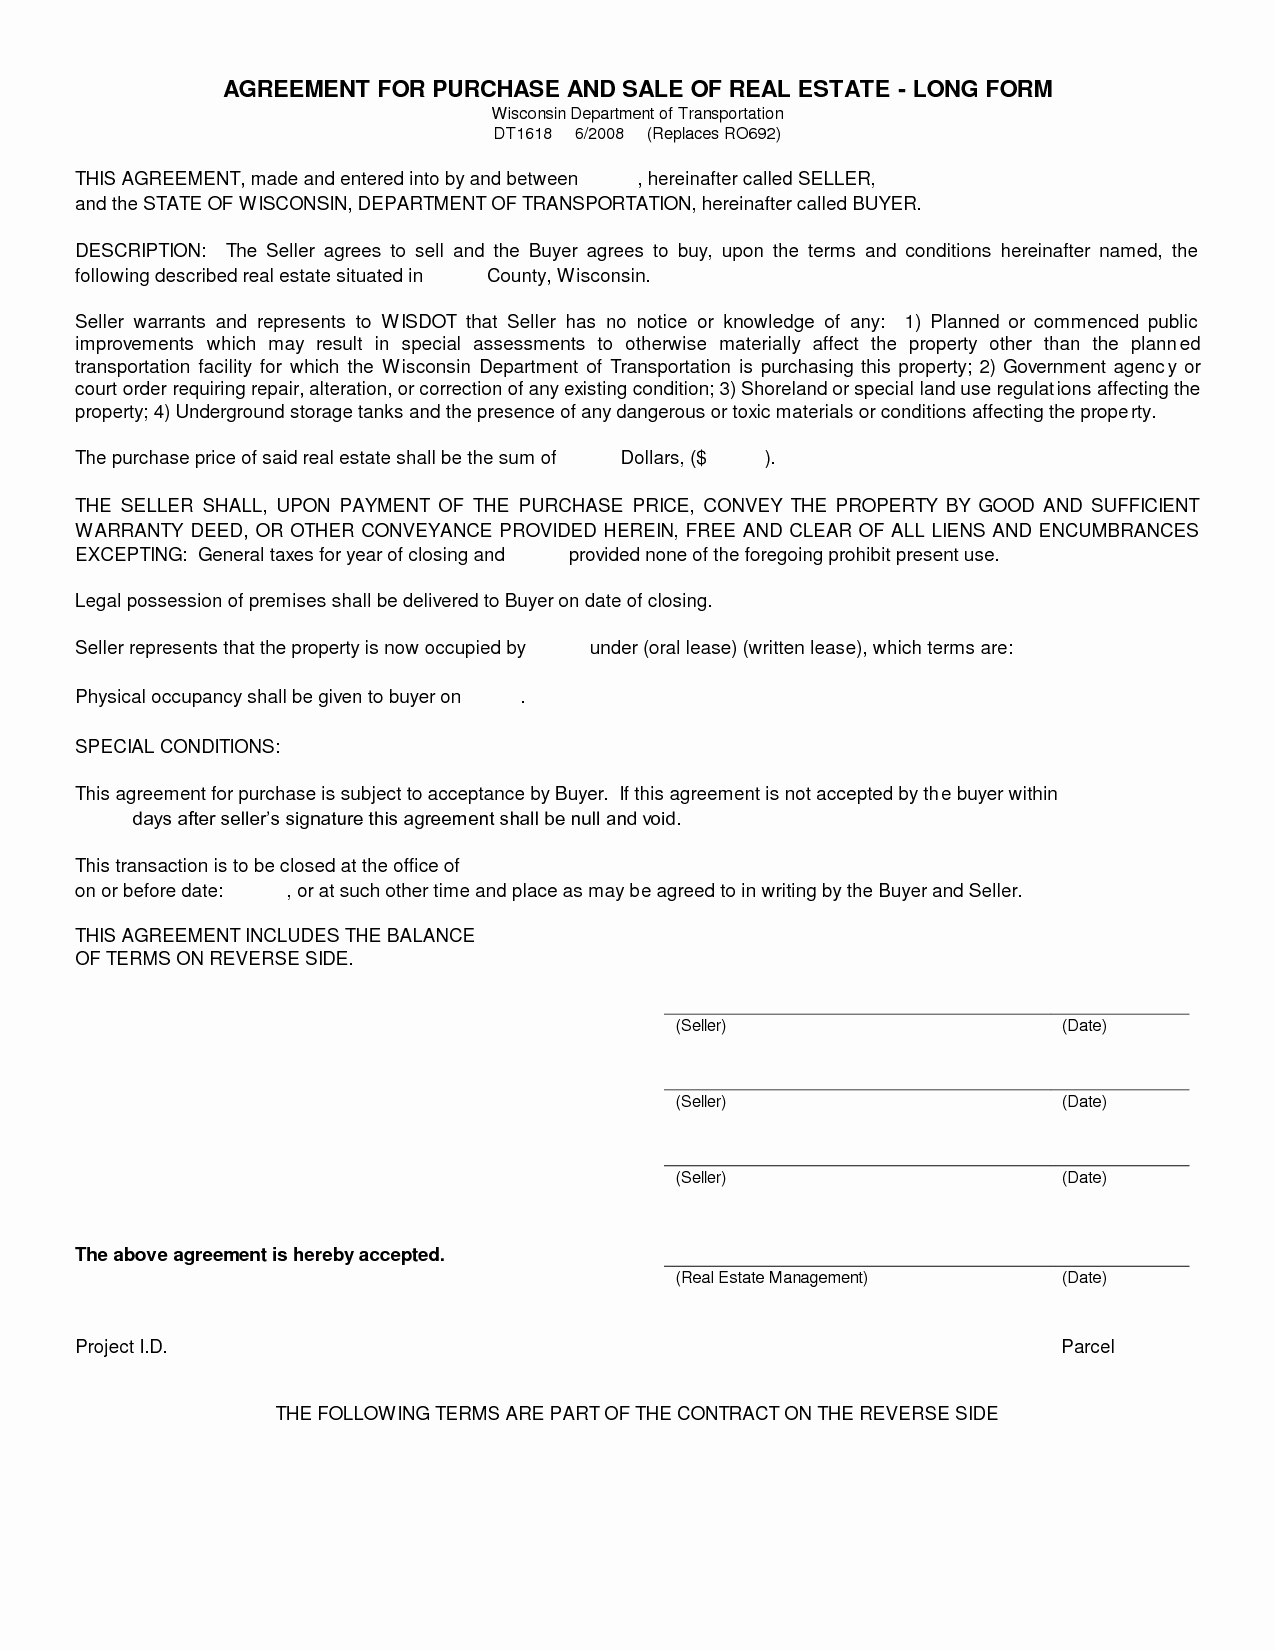 Free Sales Agreement Template Beautiful Free Blank Purchase Agreement form Images Agreement to